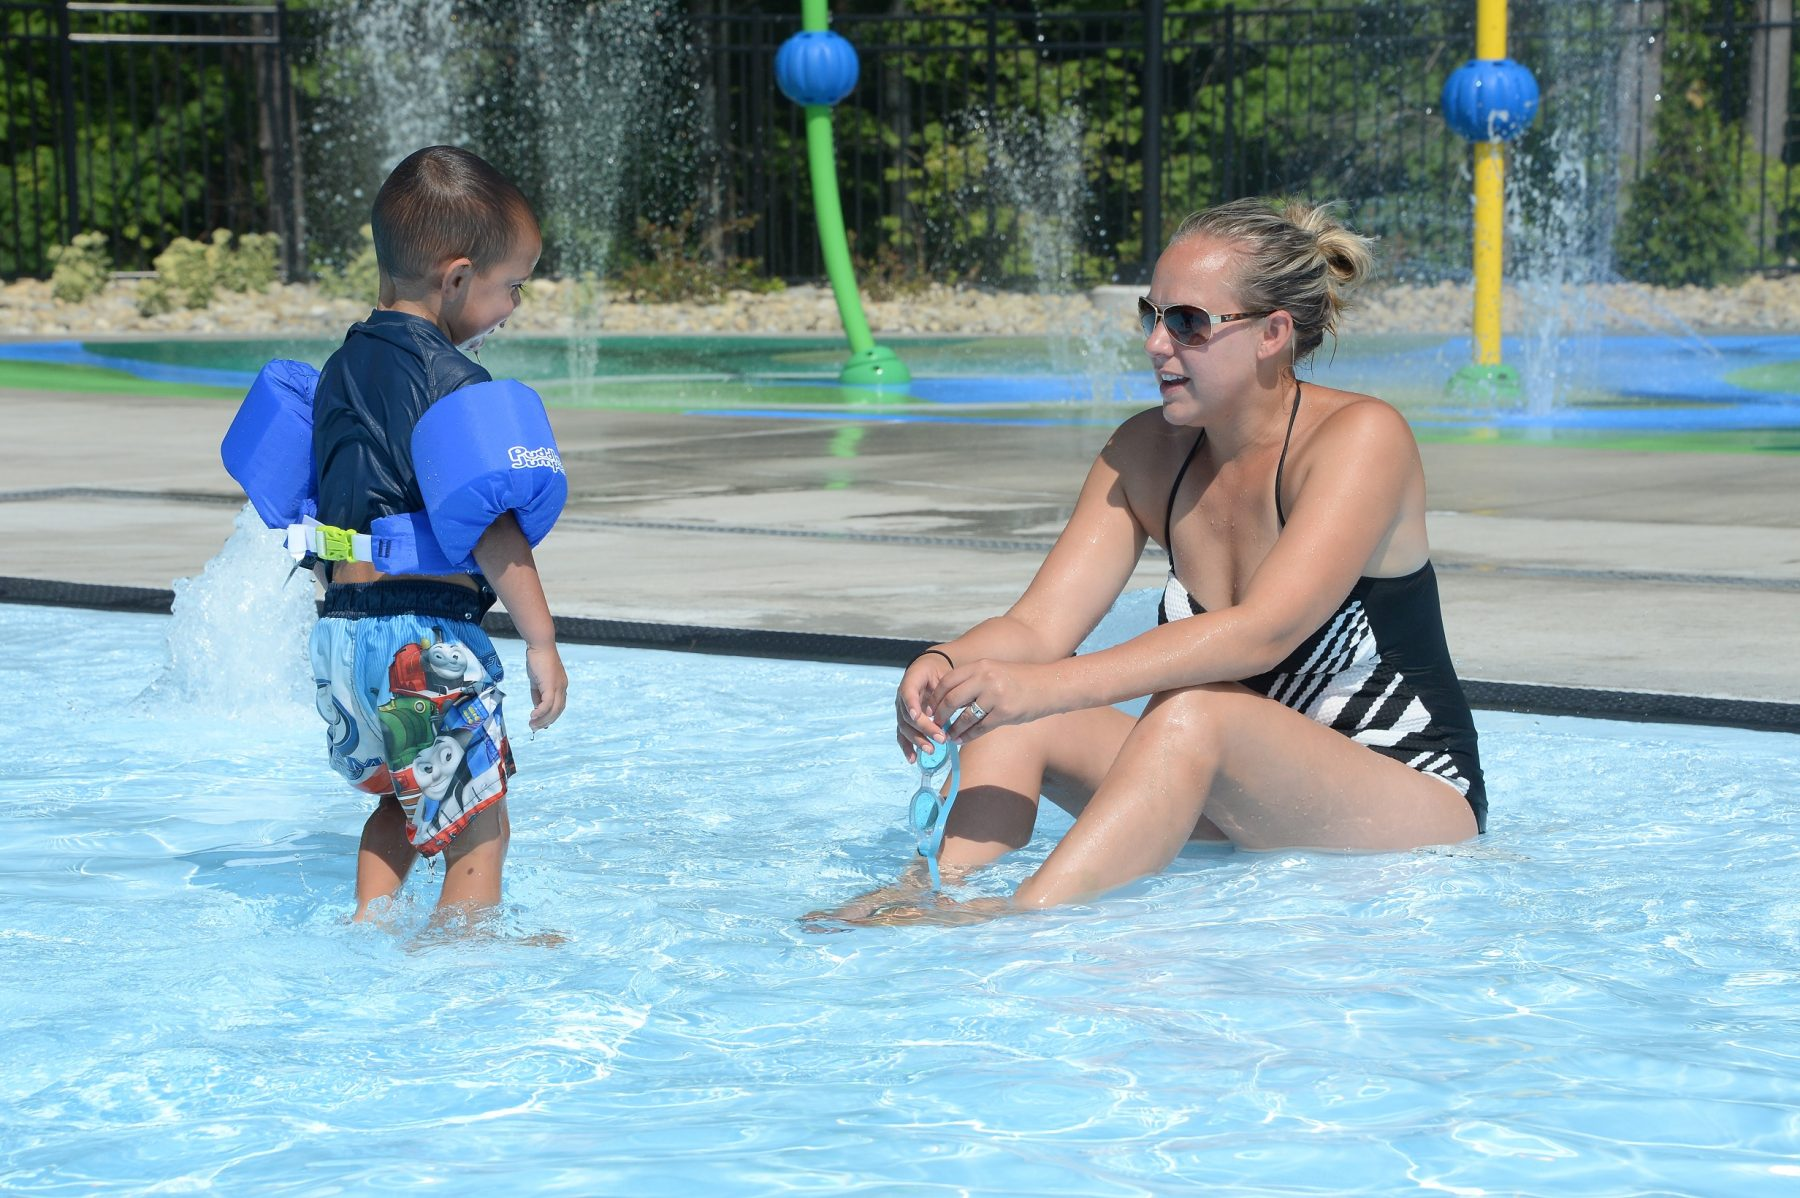 A woman is sitting in the entry area of the pool facing a young little boy who is standing in the entry of the pool. In the background some of the sprayers on the splash pad are shown.